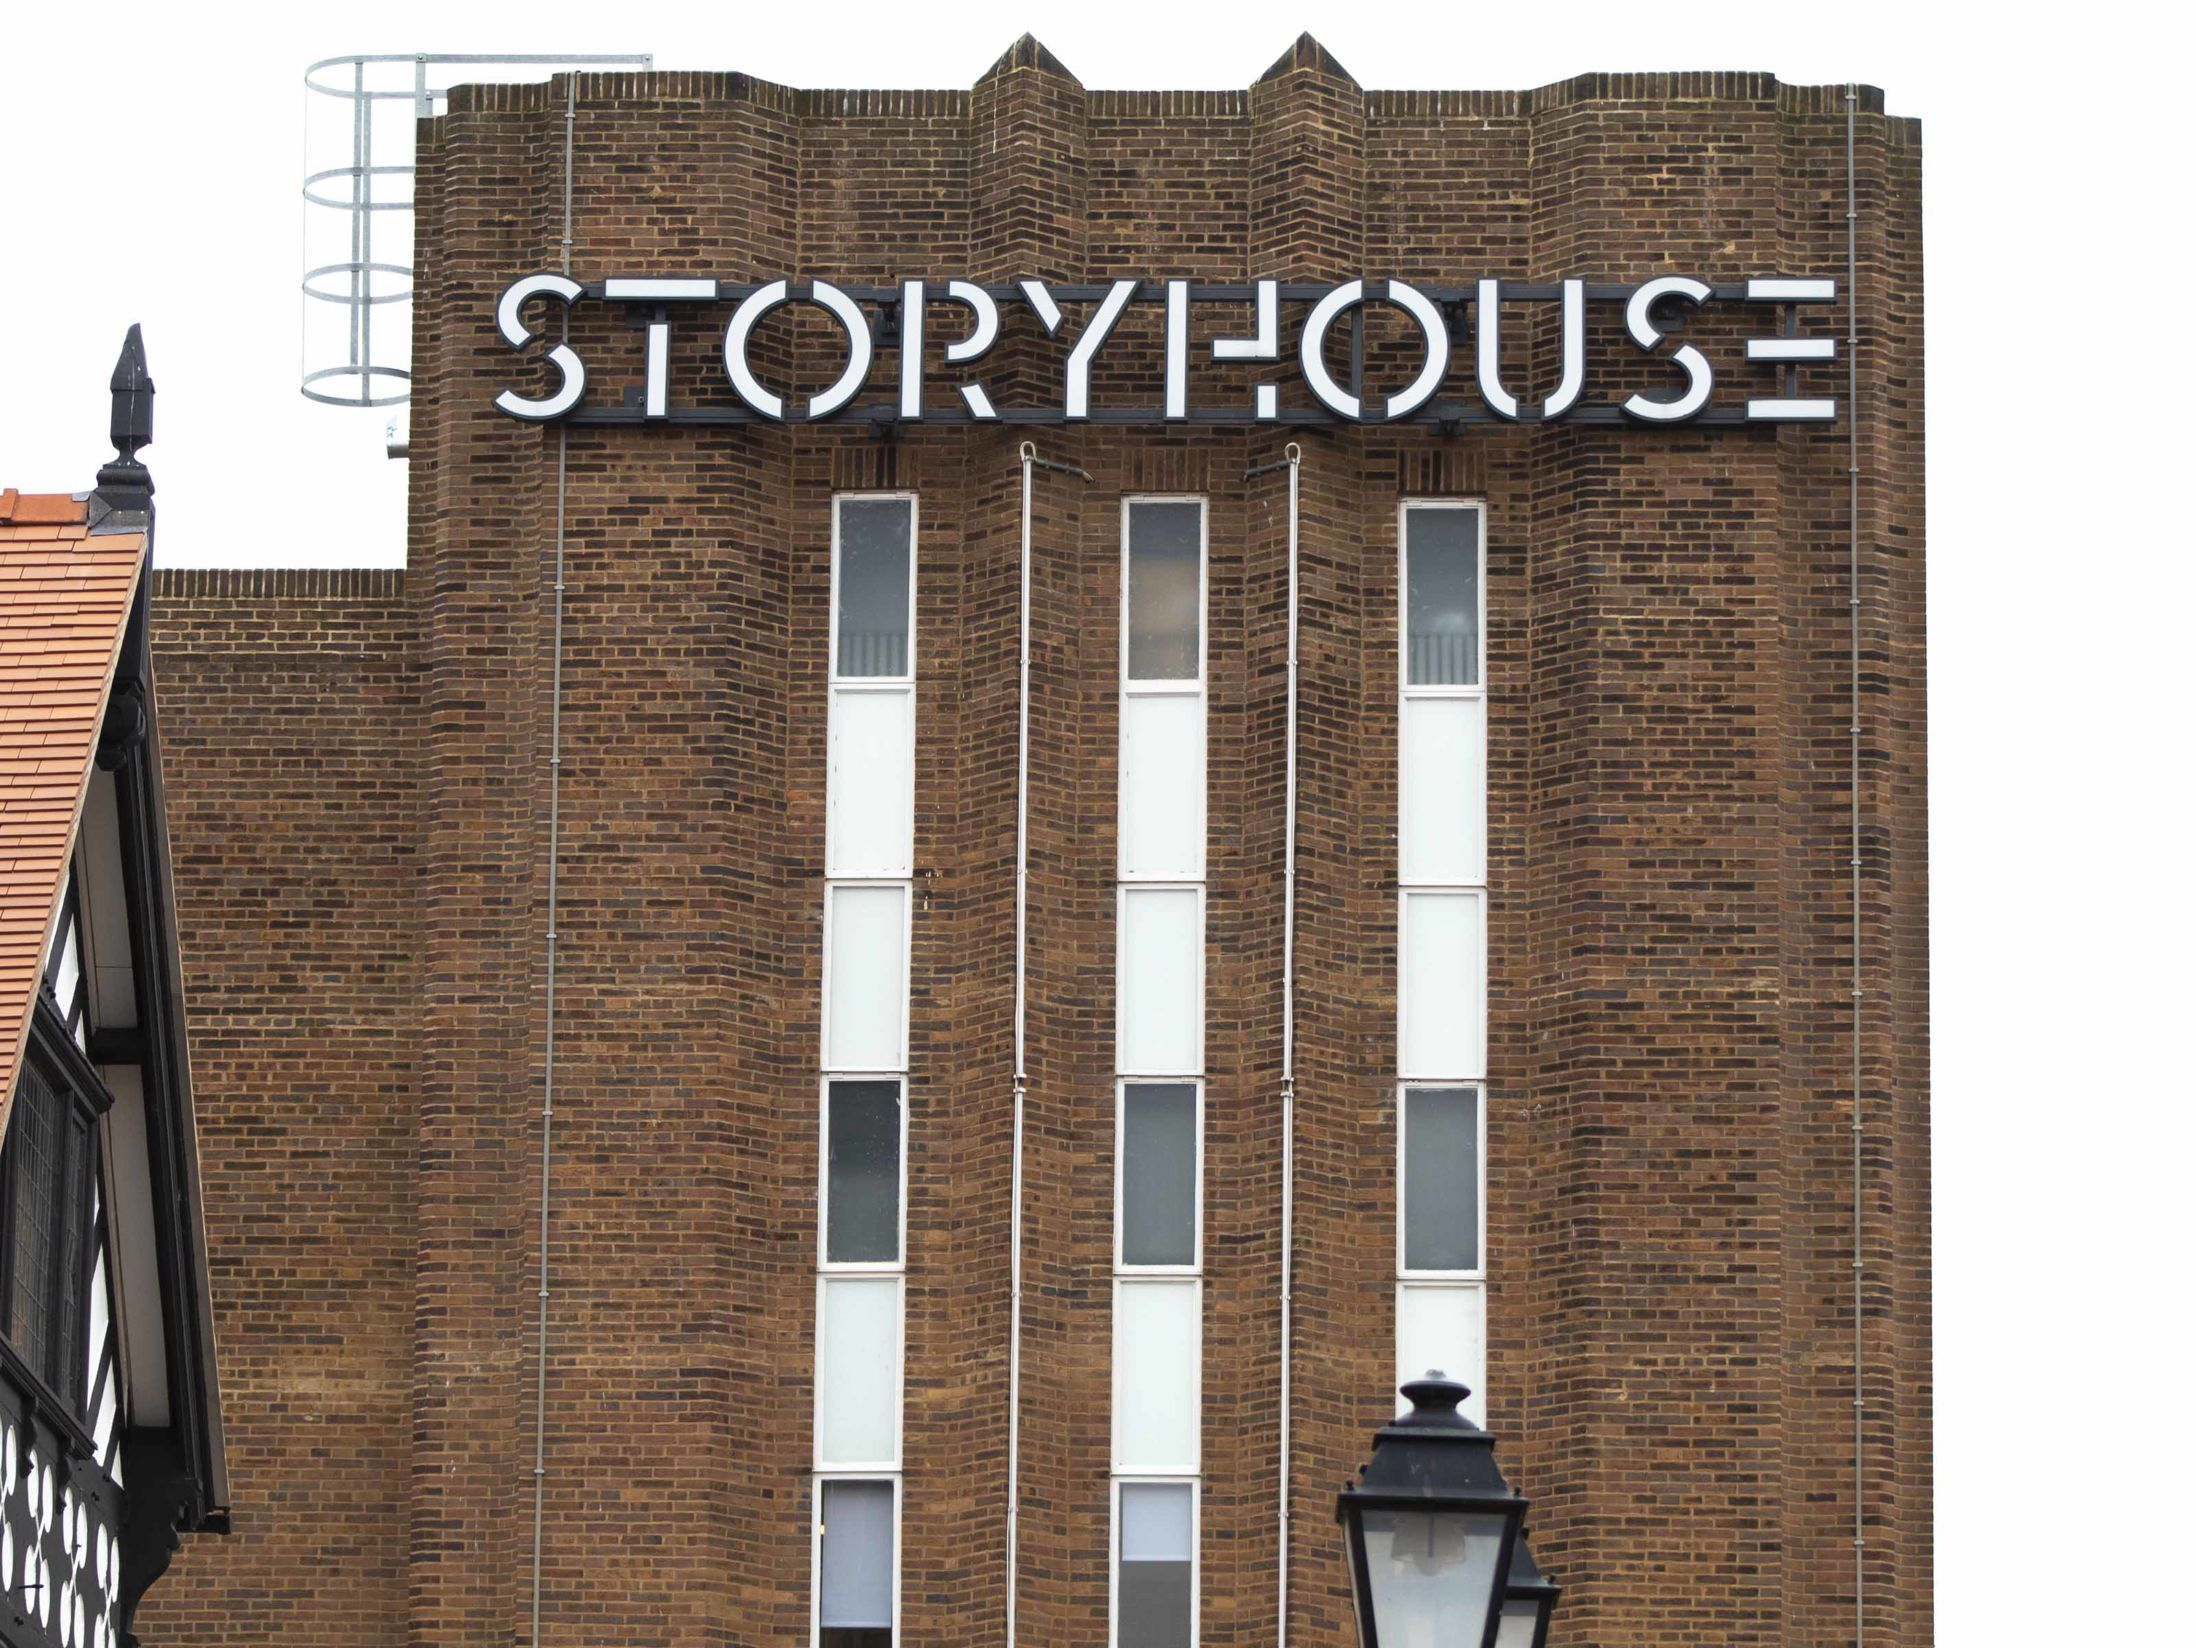 Storyhouse - Things to Do in Chester